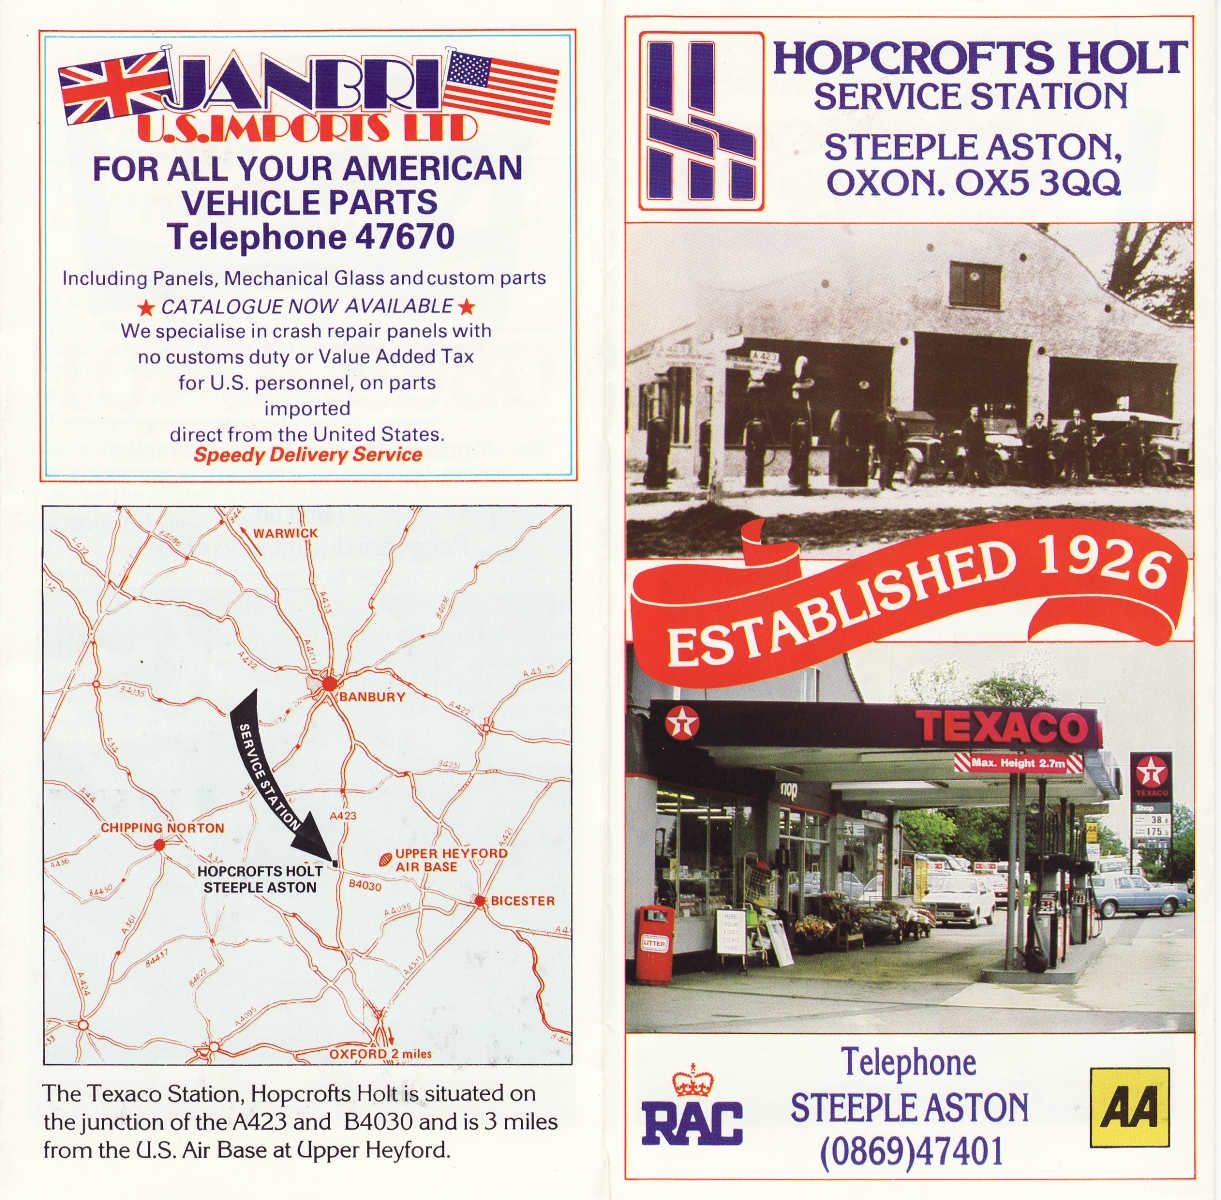 Hopcrofts Holt Service Station advertisement -1.